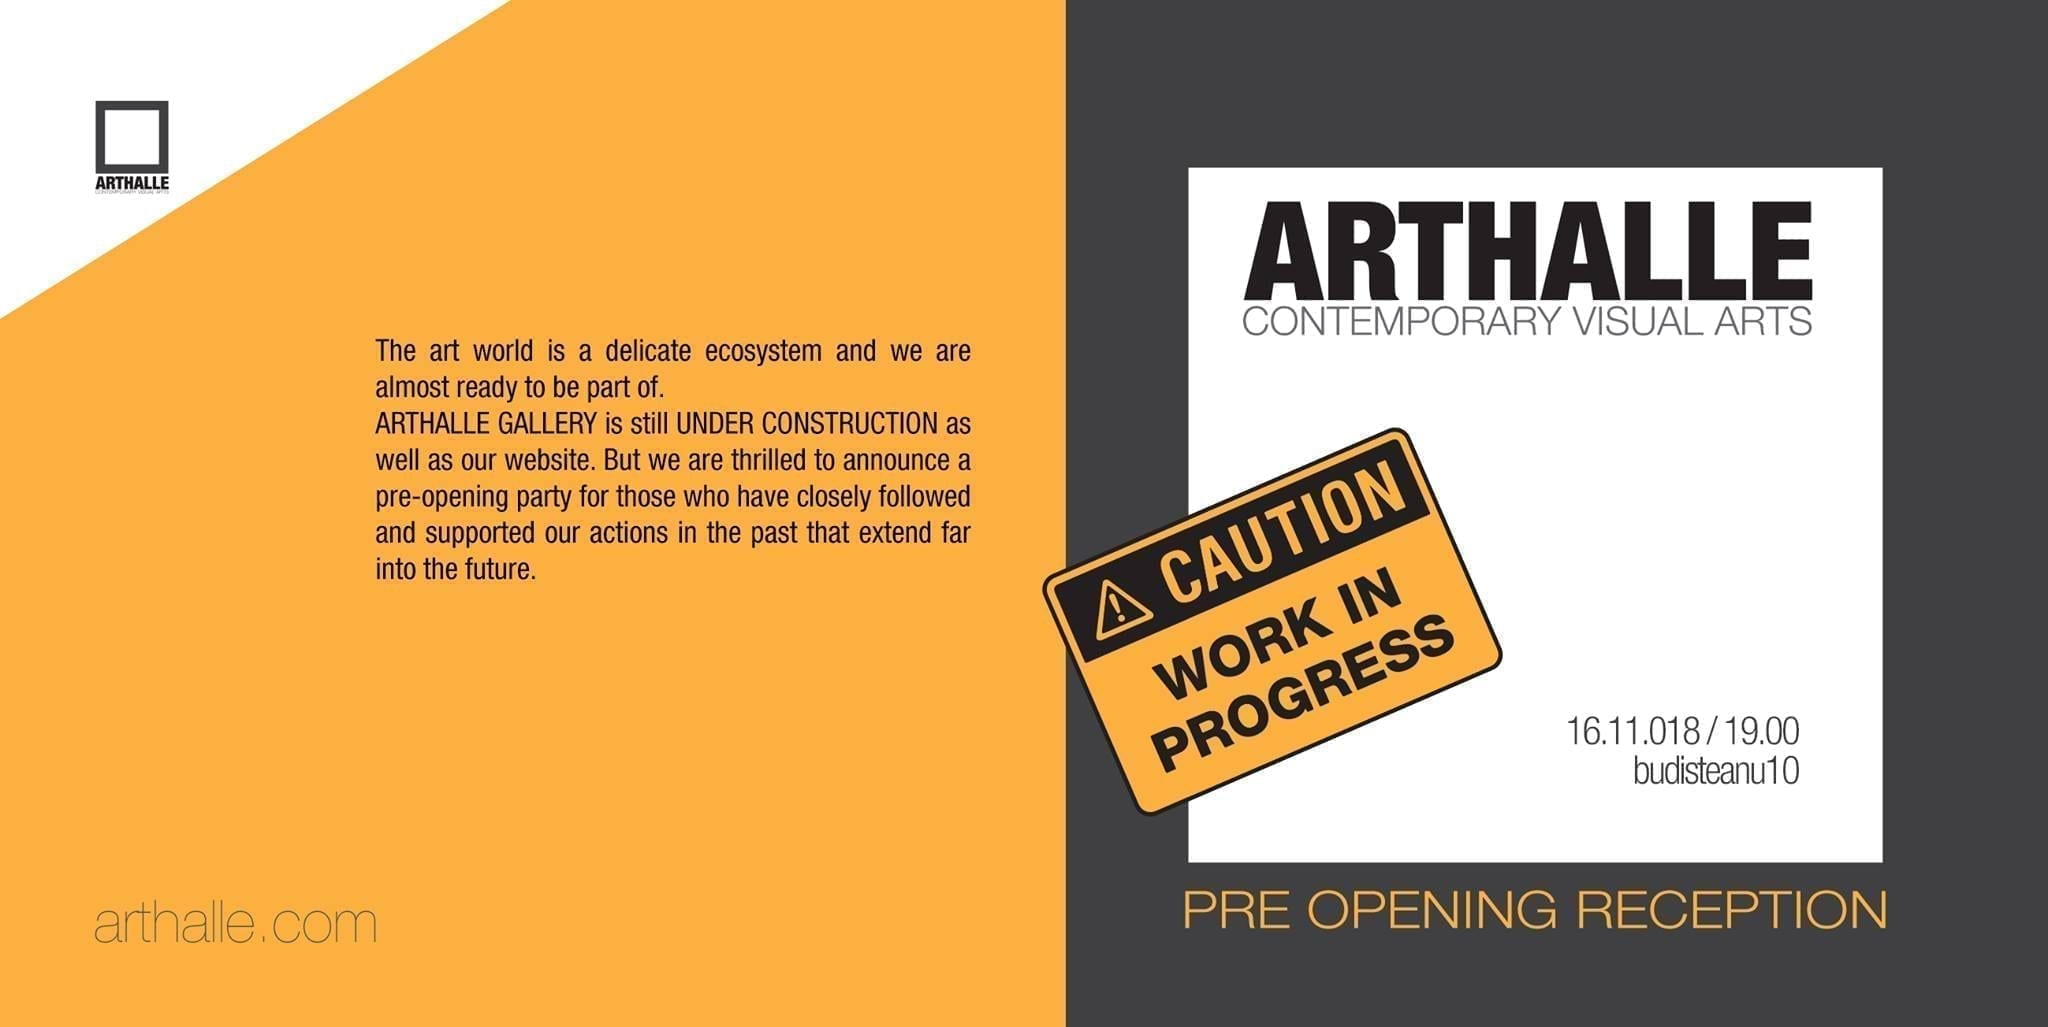 Arthalle Gallery / Work in progress PRE/opening